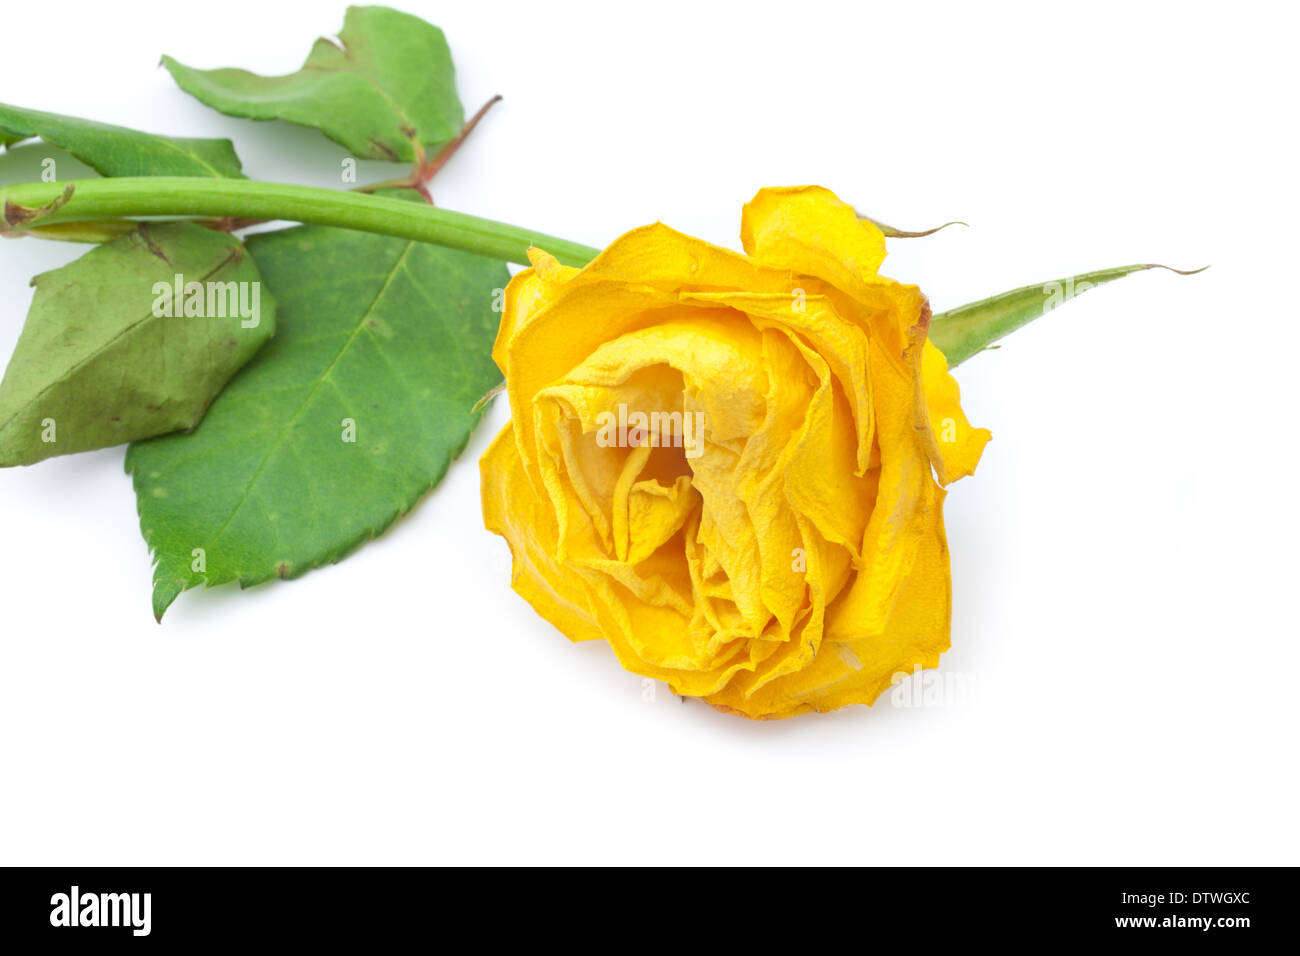 Withered yellow rose - Stock Image